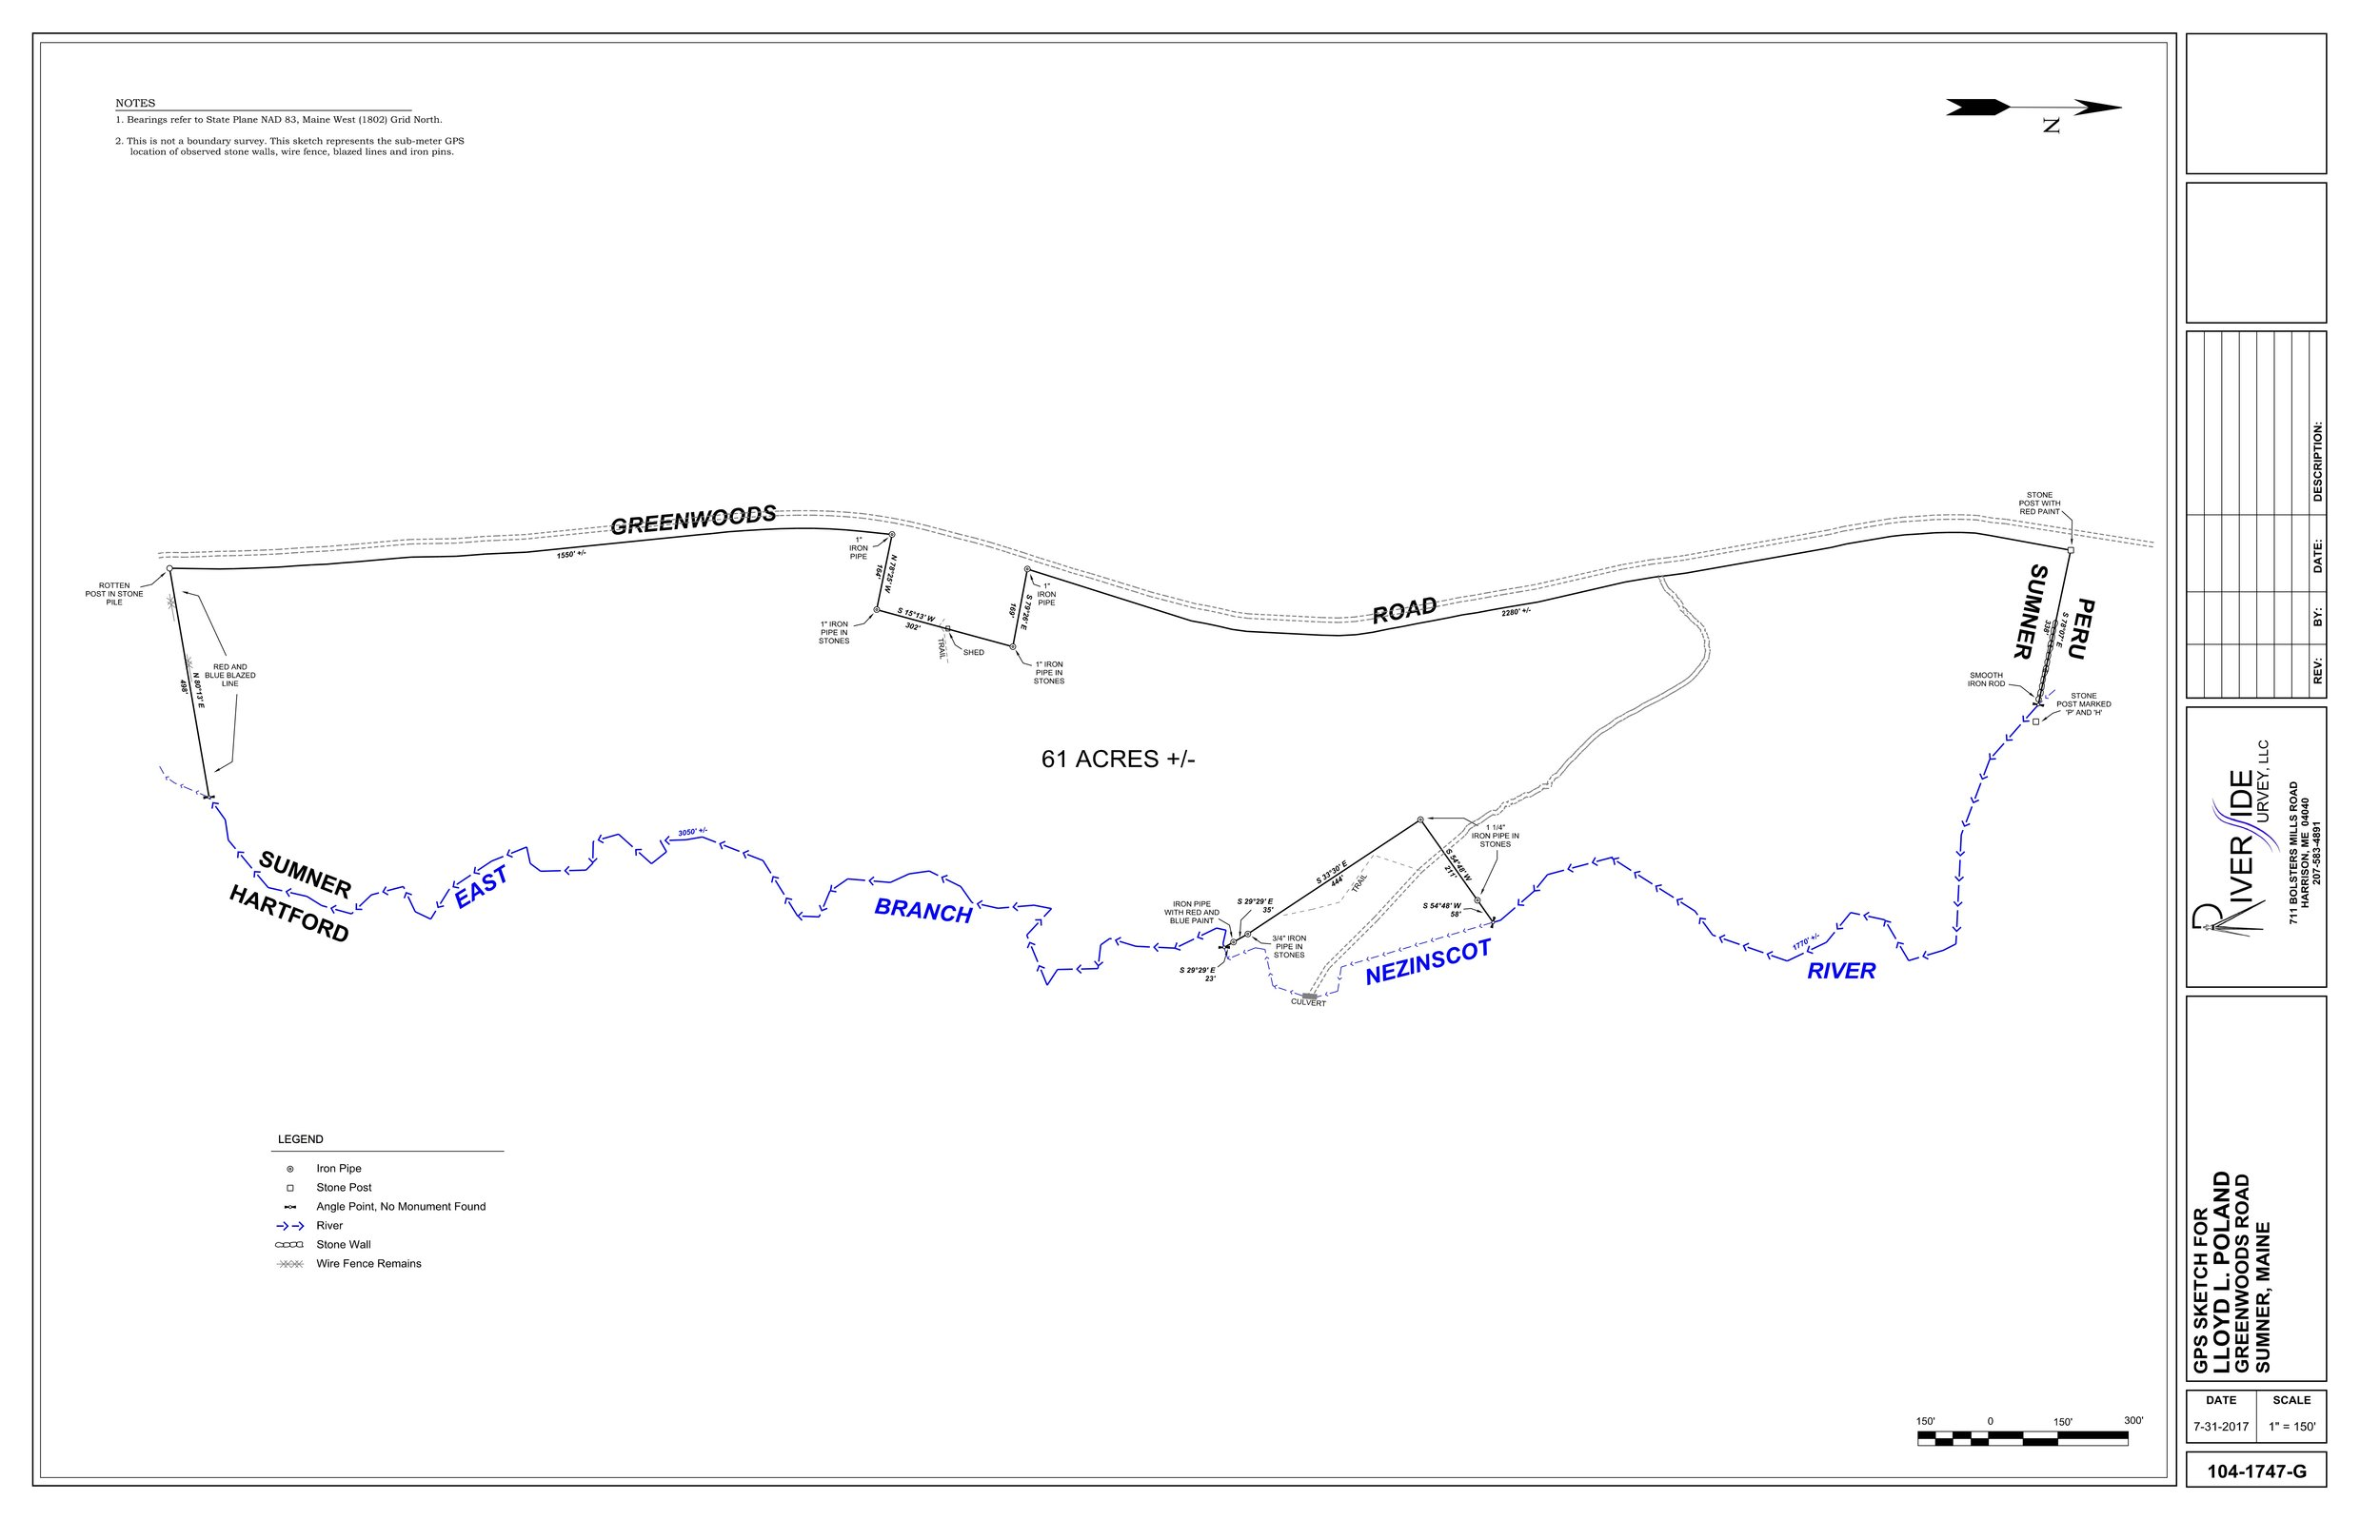 SUMNER - Click Here To View The PDF Map